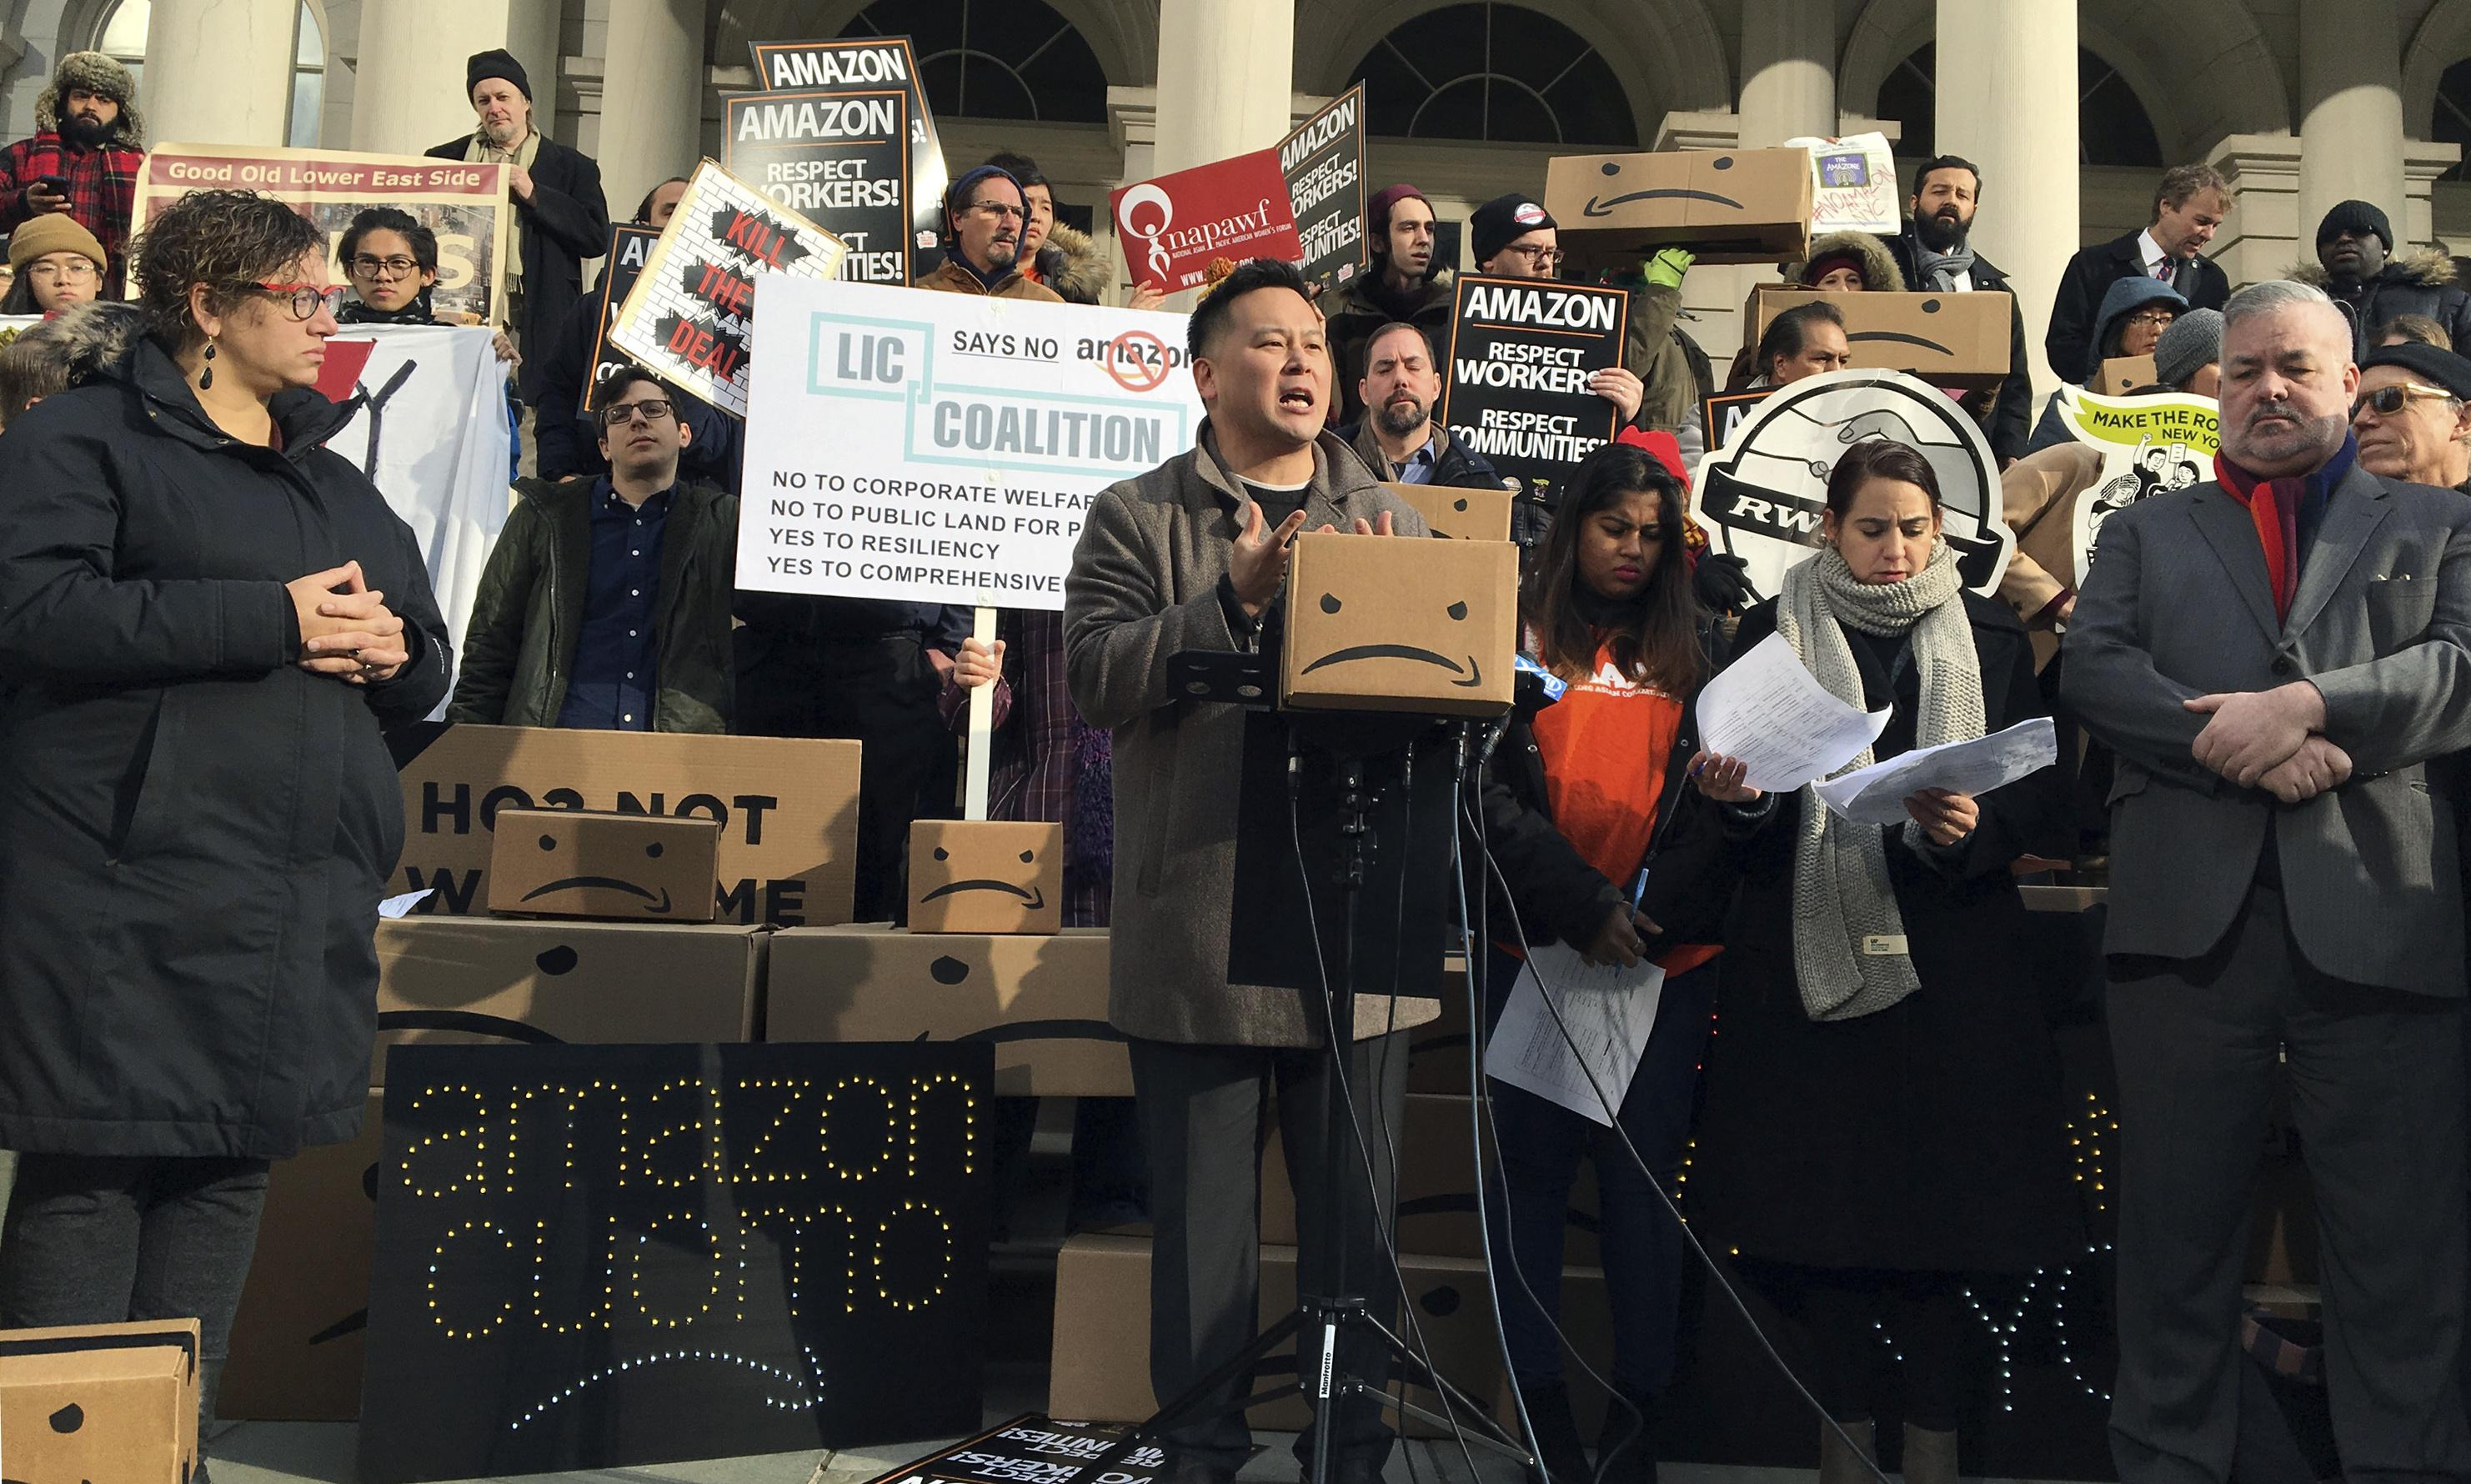 Amazon meets public opposition at first hearing for New York headquarters